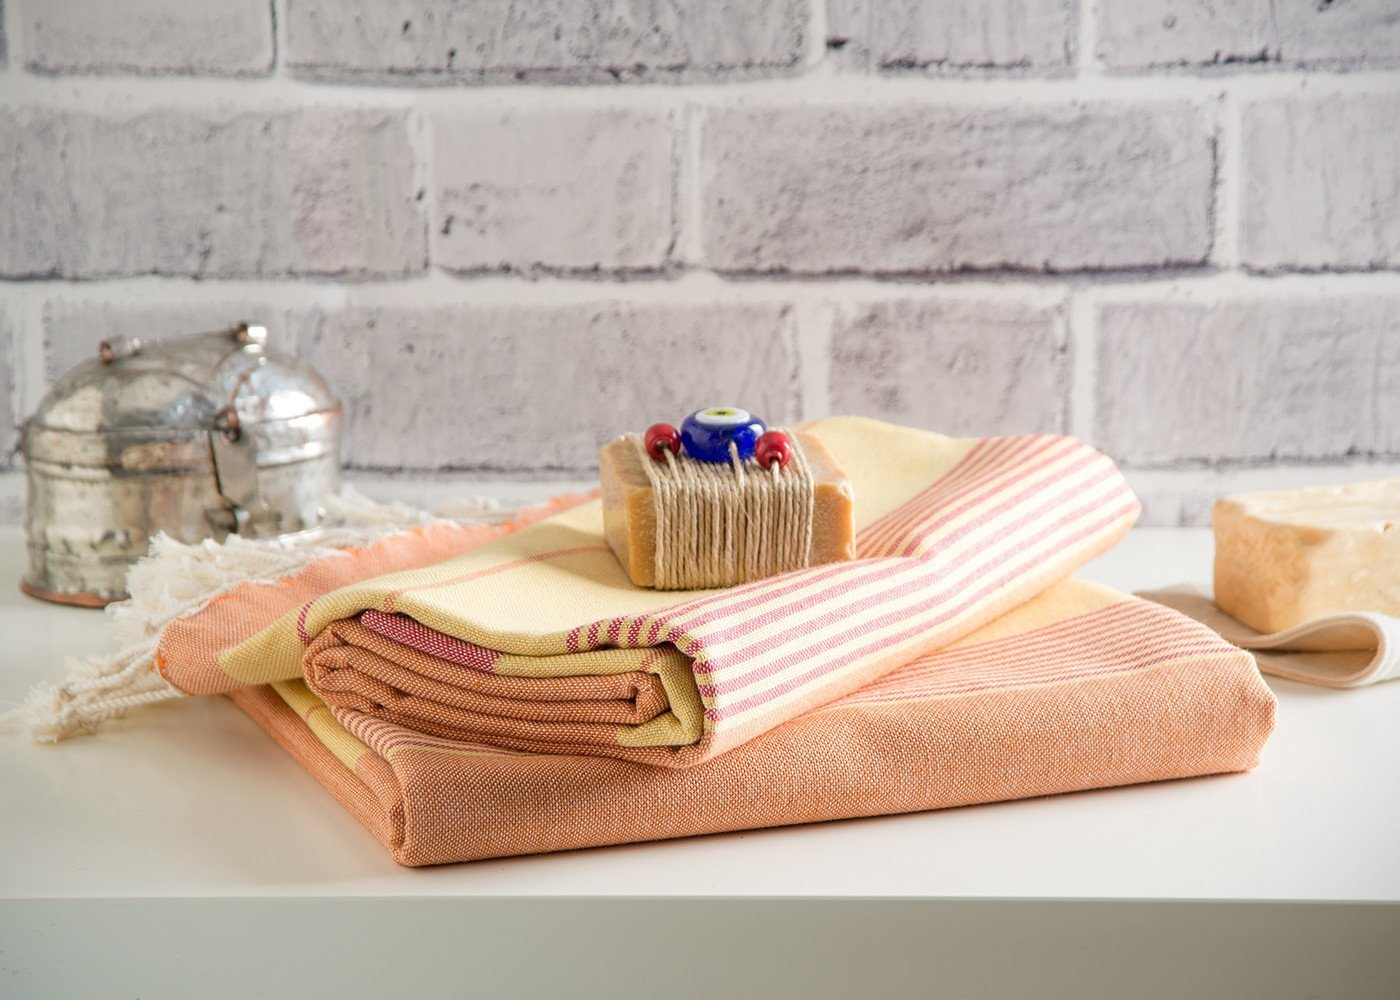 Set of 3 Peshtemal Towels 100% Natural Cotton